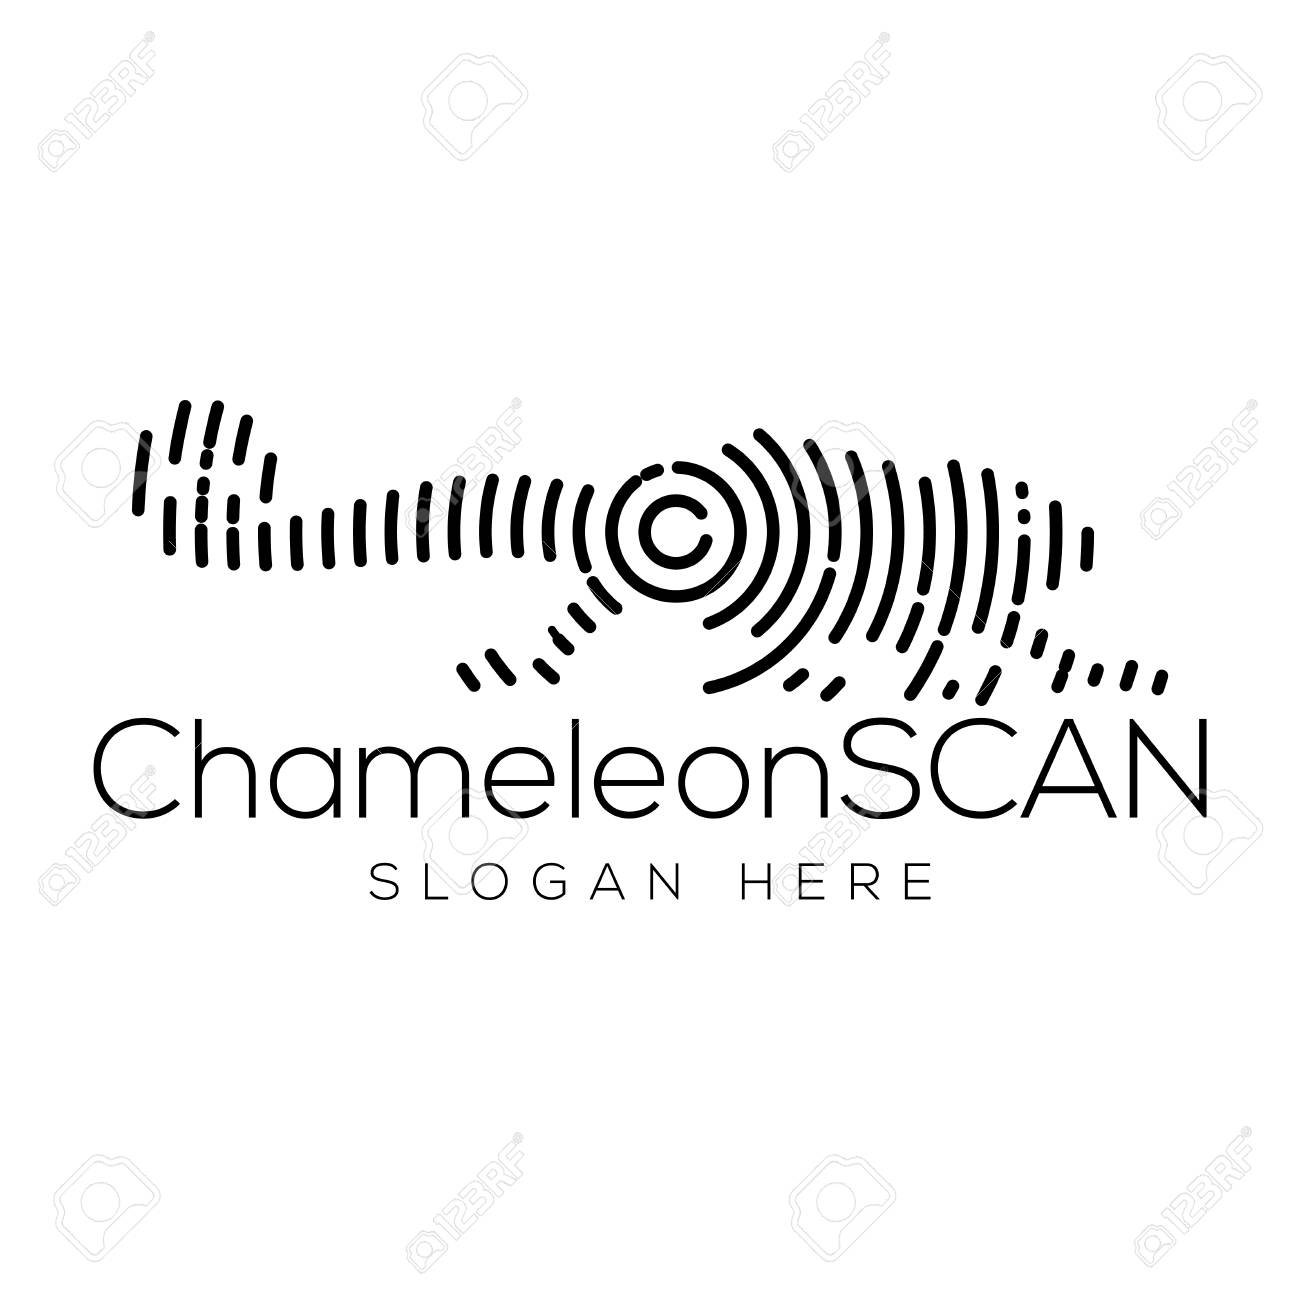 Chameleon Scan Technology Logo Vector Element Animal Technology